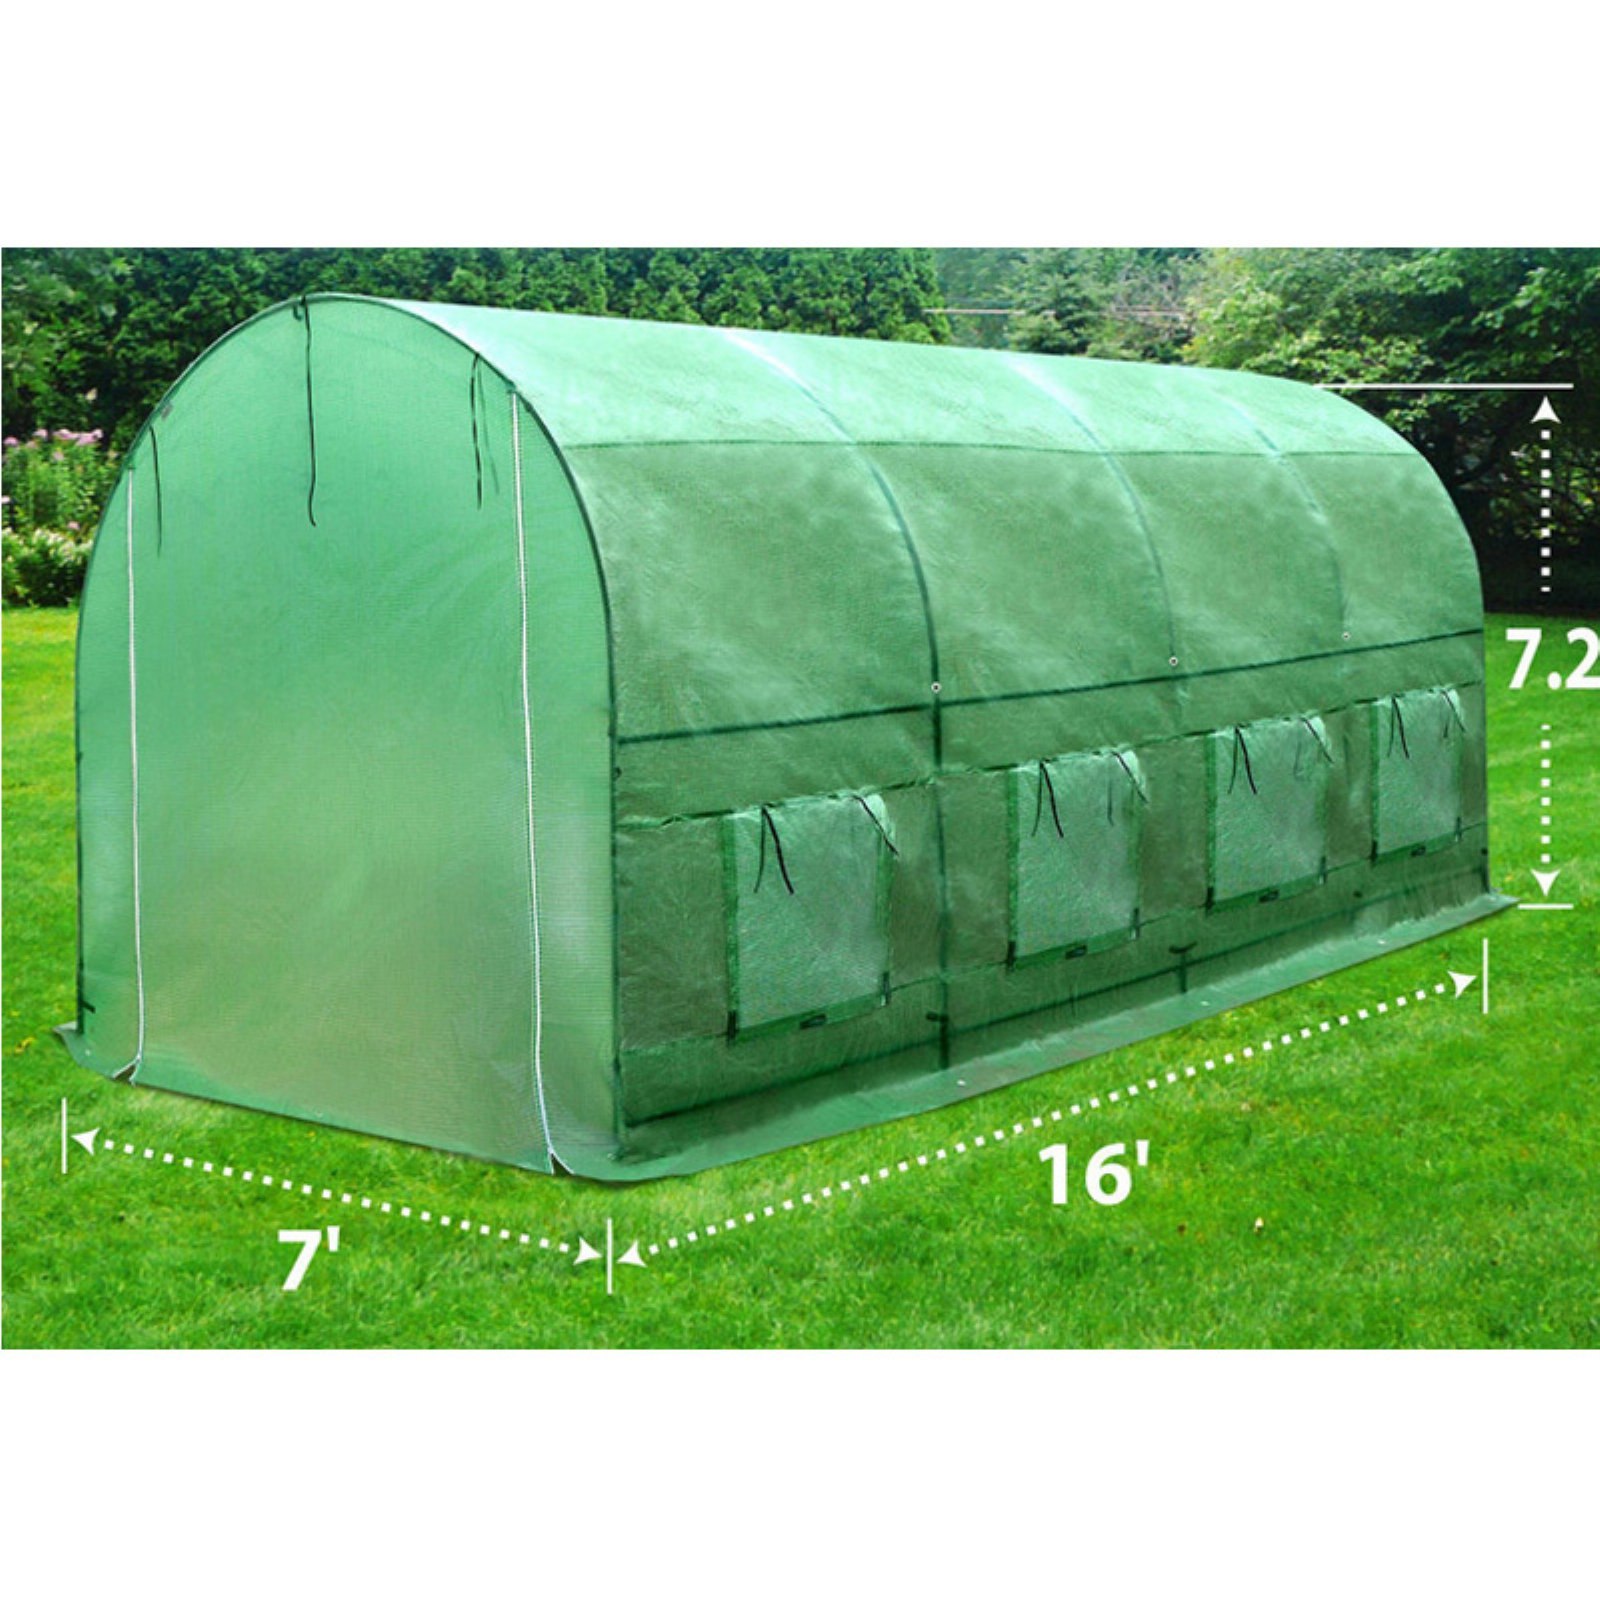 Sunrise Umbrella Outdoor Plant Gardening 16L x 7W x 7H ft. Large Walk-In Greenhouse by